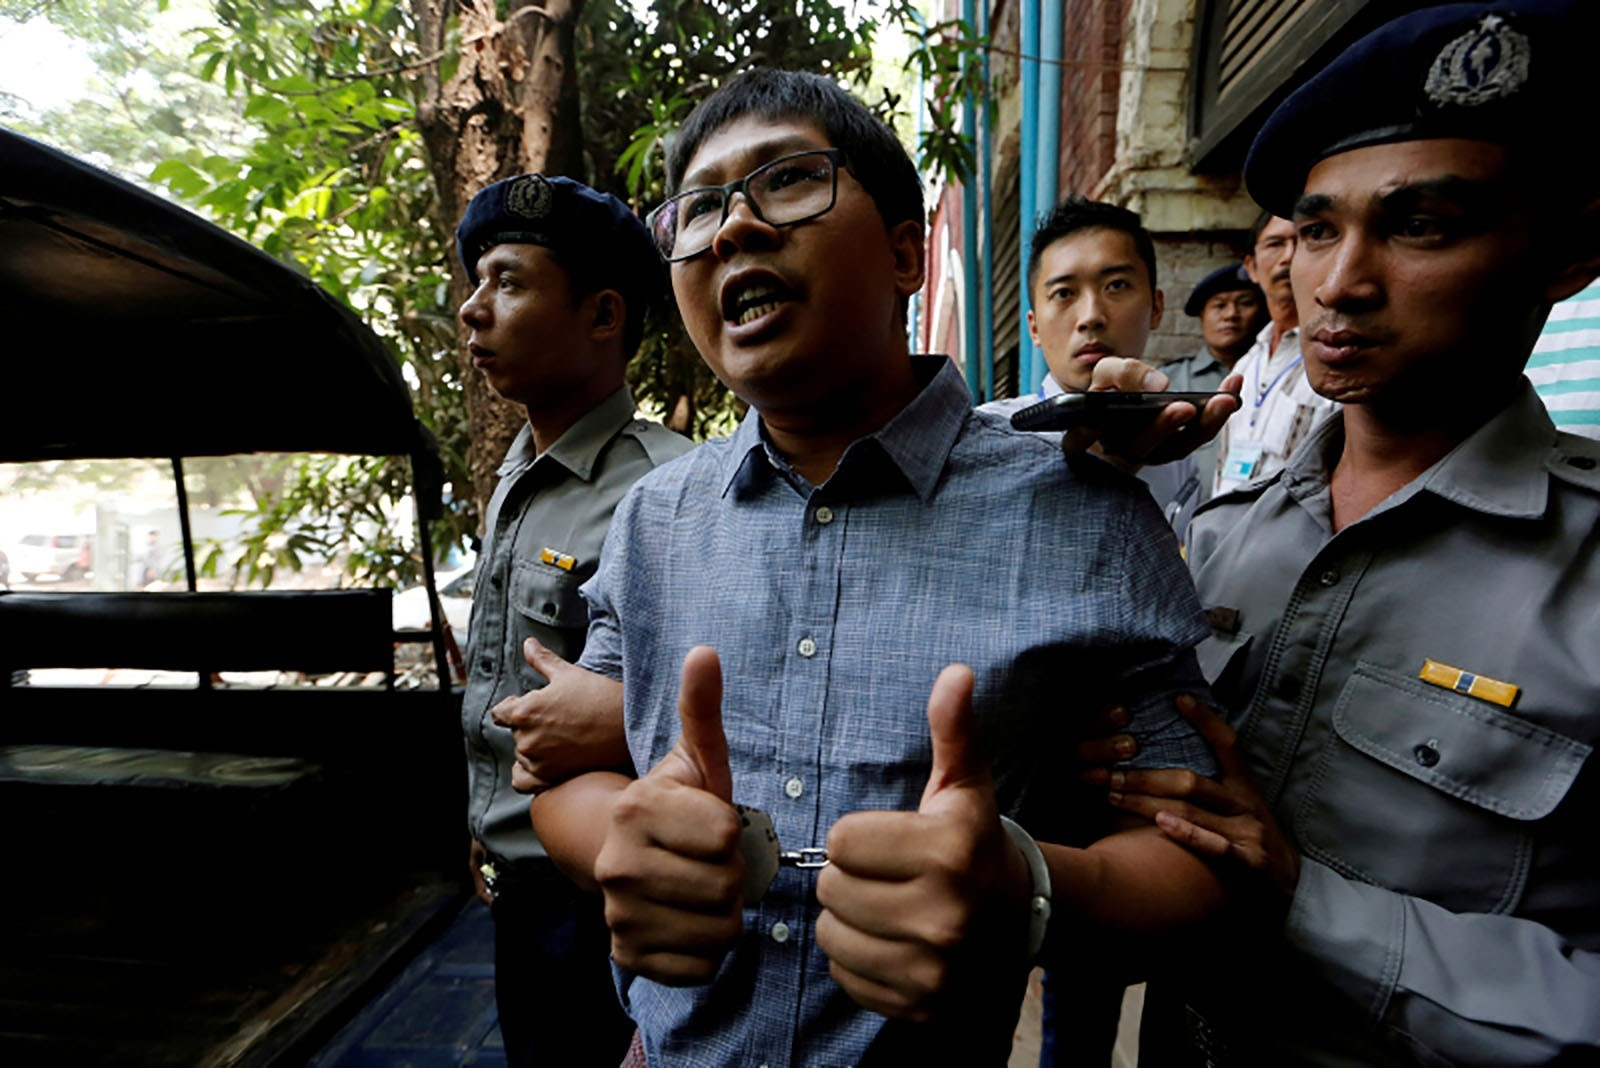 Detained Reuters journalist Wa Lone is escorted by police after a court hearing in Yangon, Myanmar April 4, 2018.